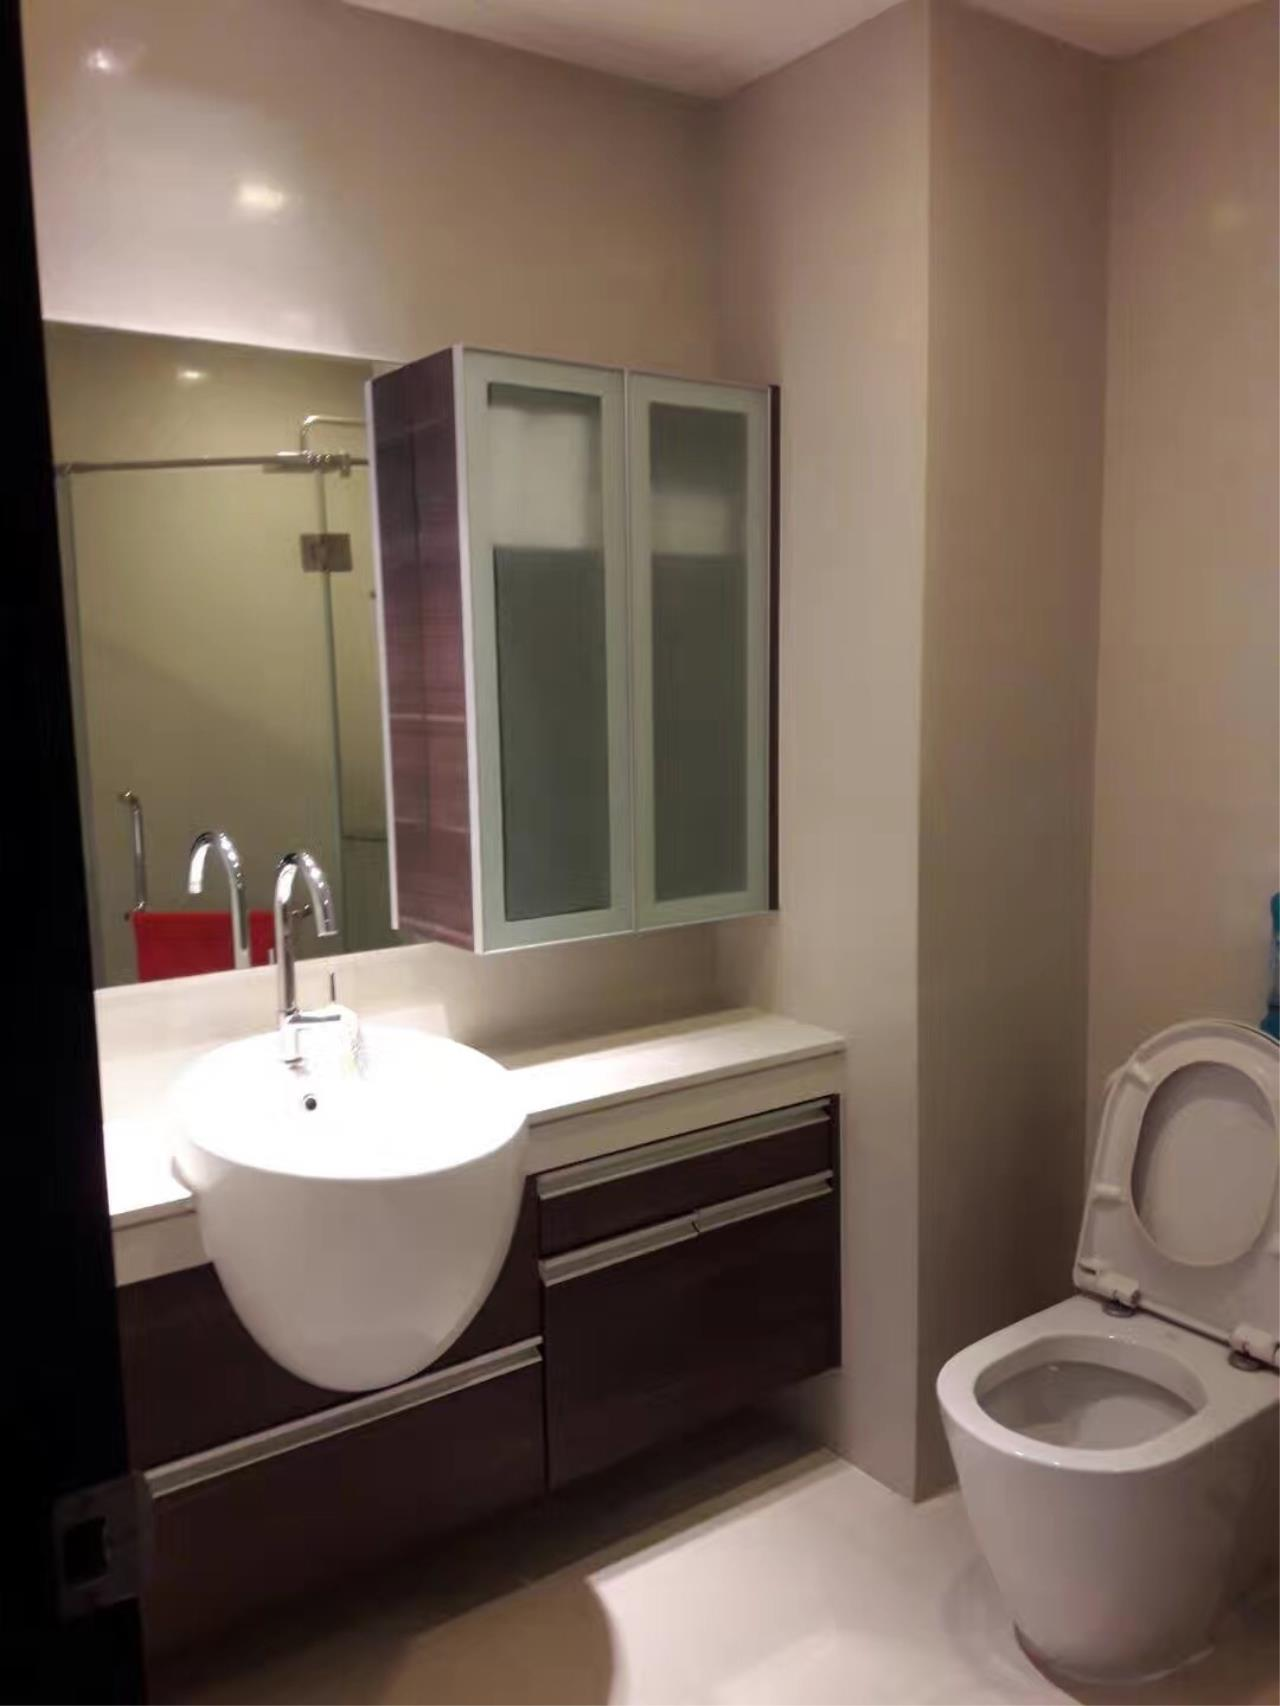 RE/MAX All Star Realty Agency's Skywalk one bedder for rent (BTS Phra Khanong) 6